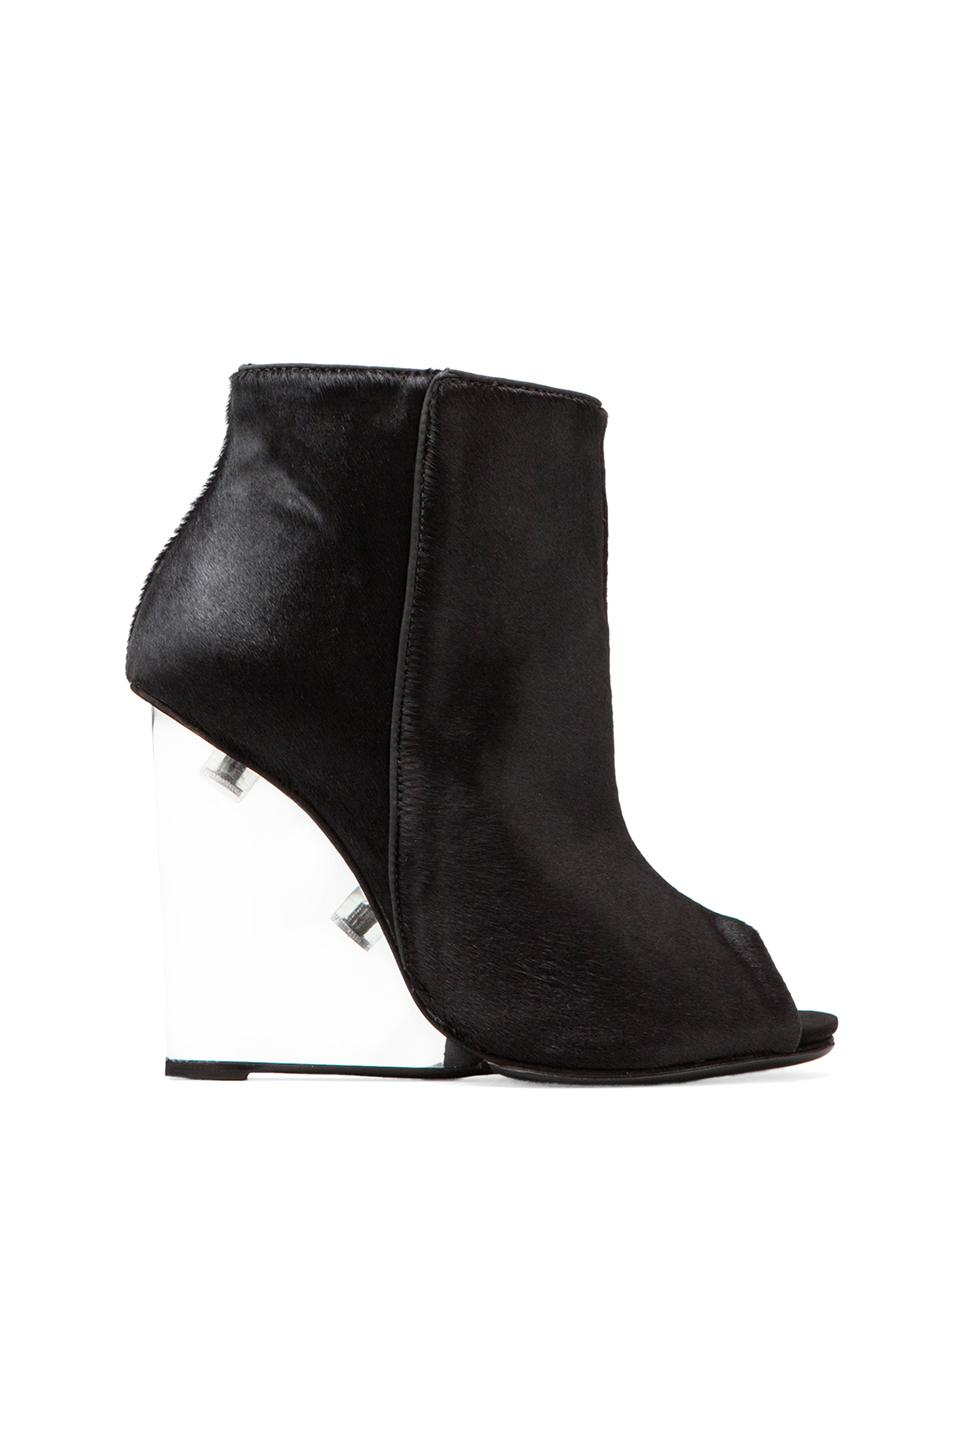 Schutz Briann Bootie with Calf Fur in Black